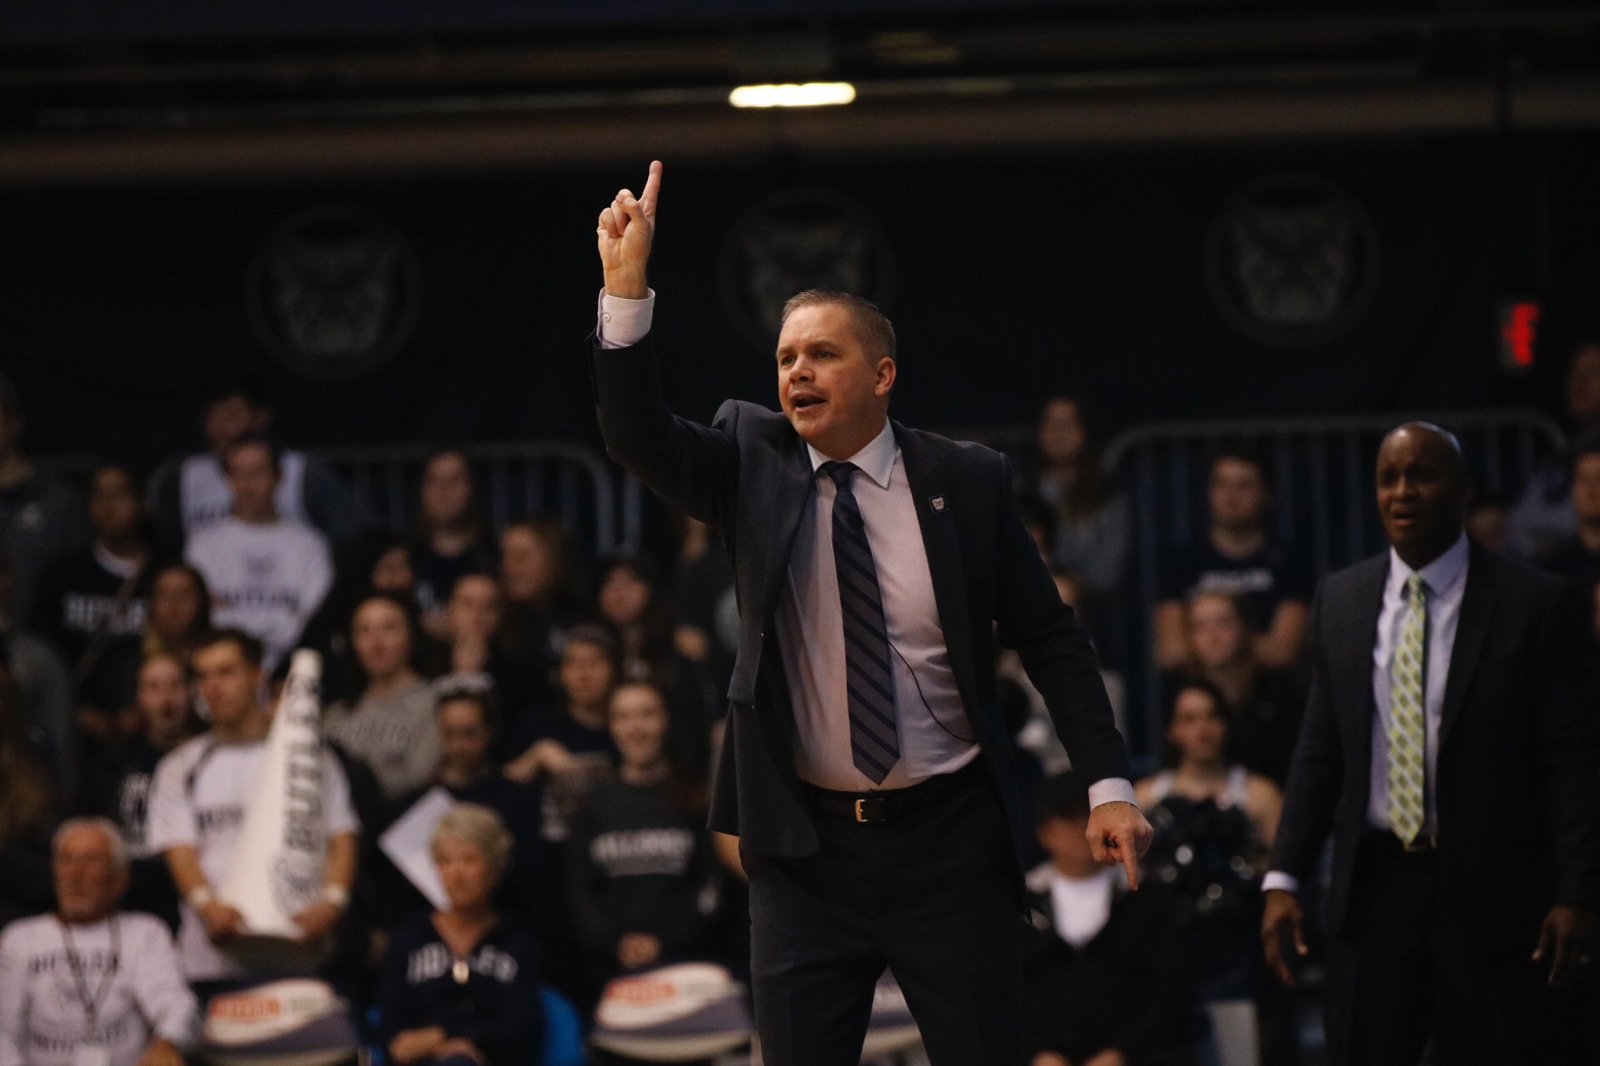 Michigan State Basketball: OSU coach vows to dominate OH recruiting